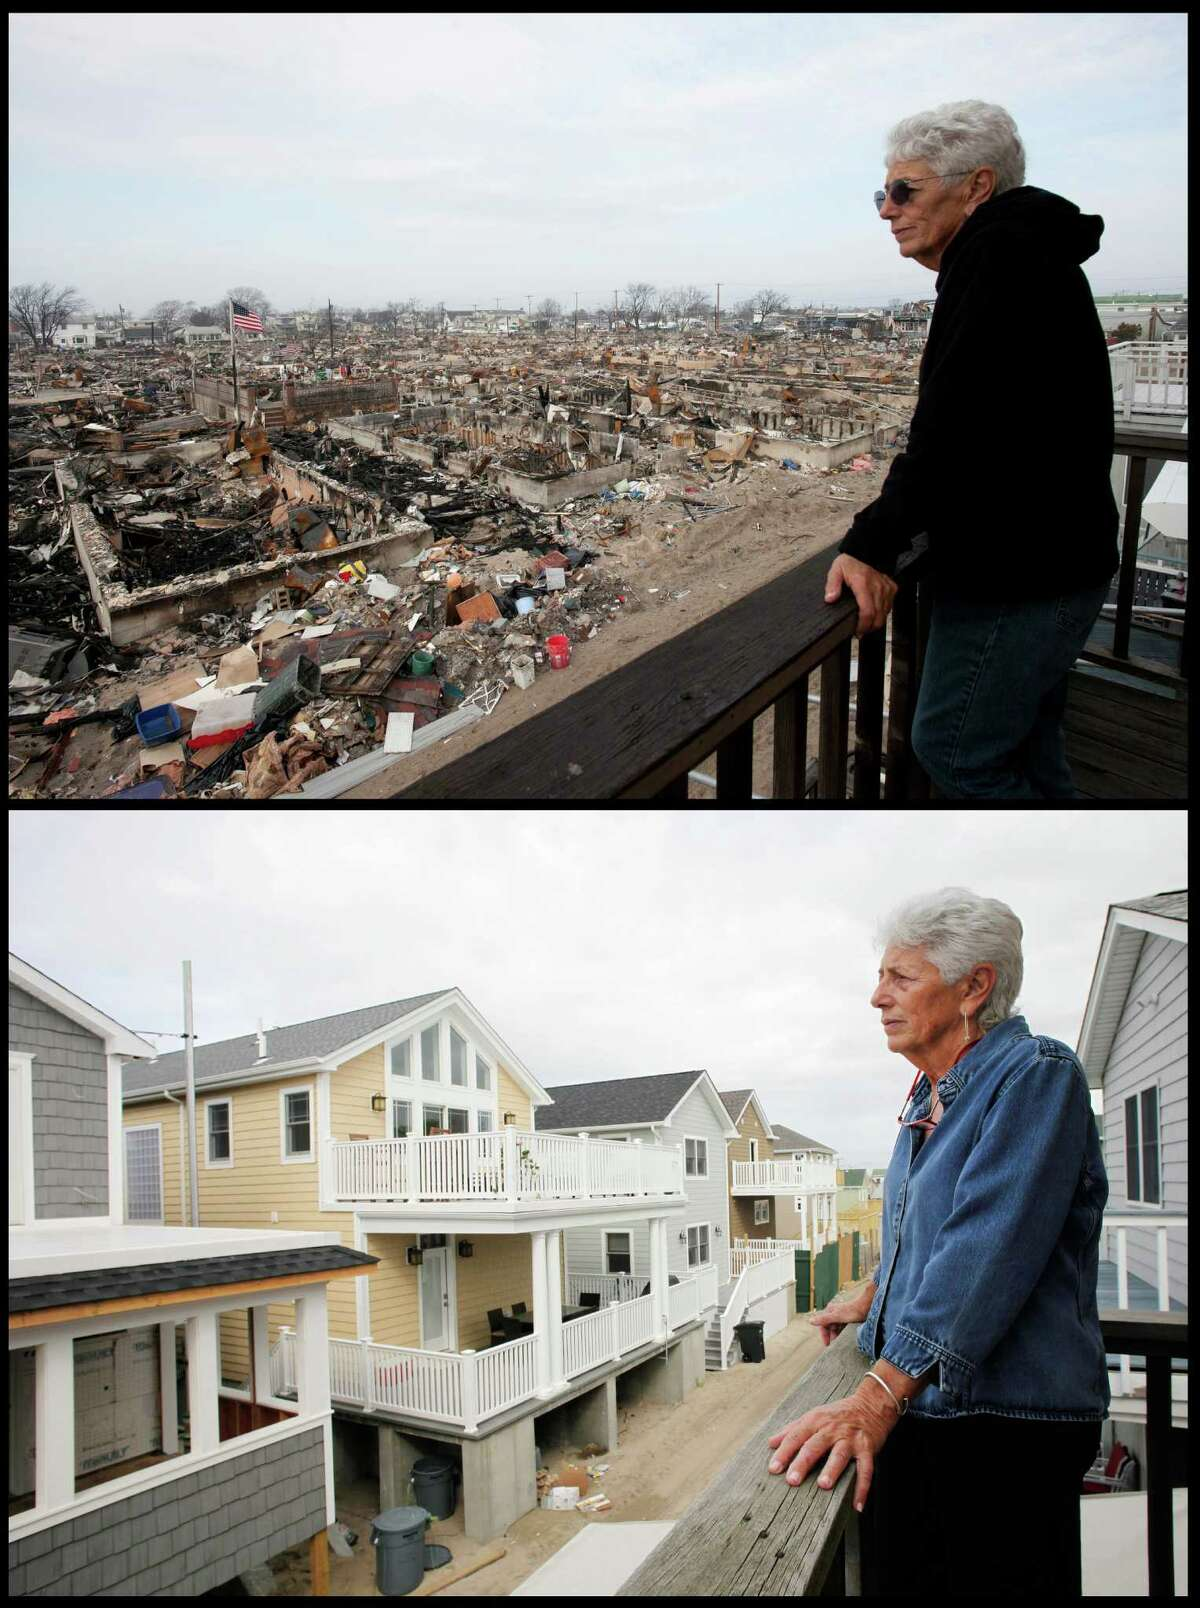 In this combination of photos from Dec. 4 2012, and Oct. 15, 2014, Anne Hoerning looks from her second floor balcony at the remains of the over 100 houses that burned during Superstorm Sandy in the Breezy Point section of the Queens borough of New York, top, and replacements for houses that were destroyed by fire two years earlier. (AP Photo/Mark Lennihan) ORG XMIT: NY541